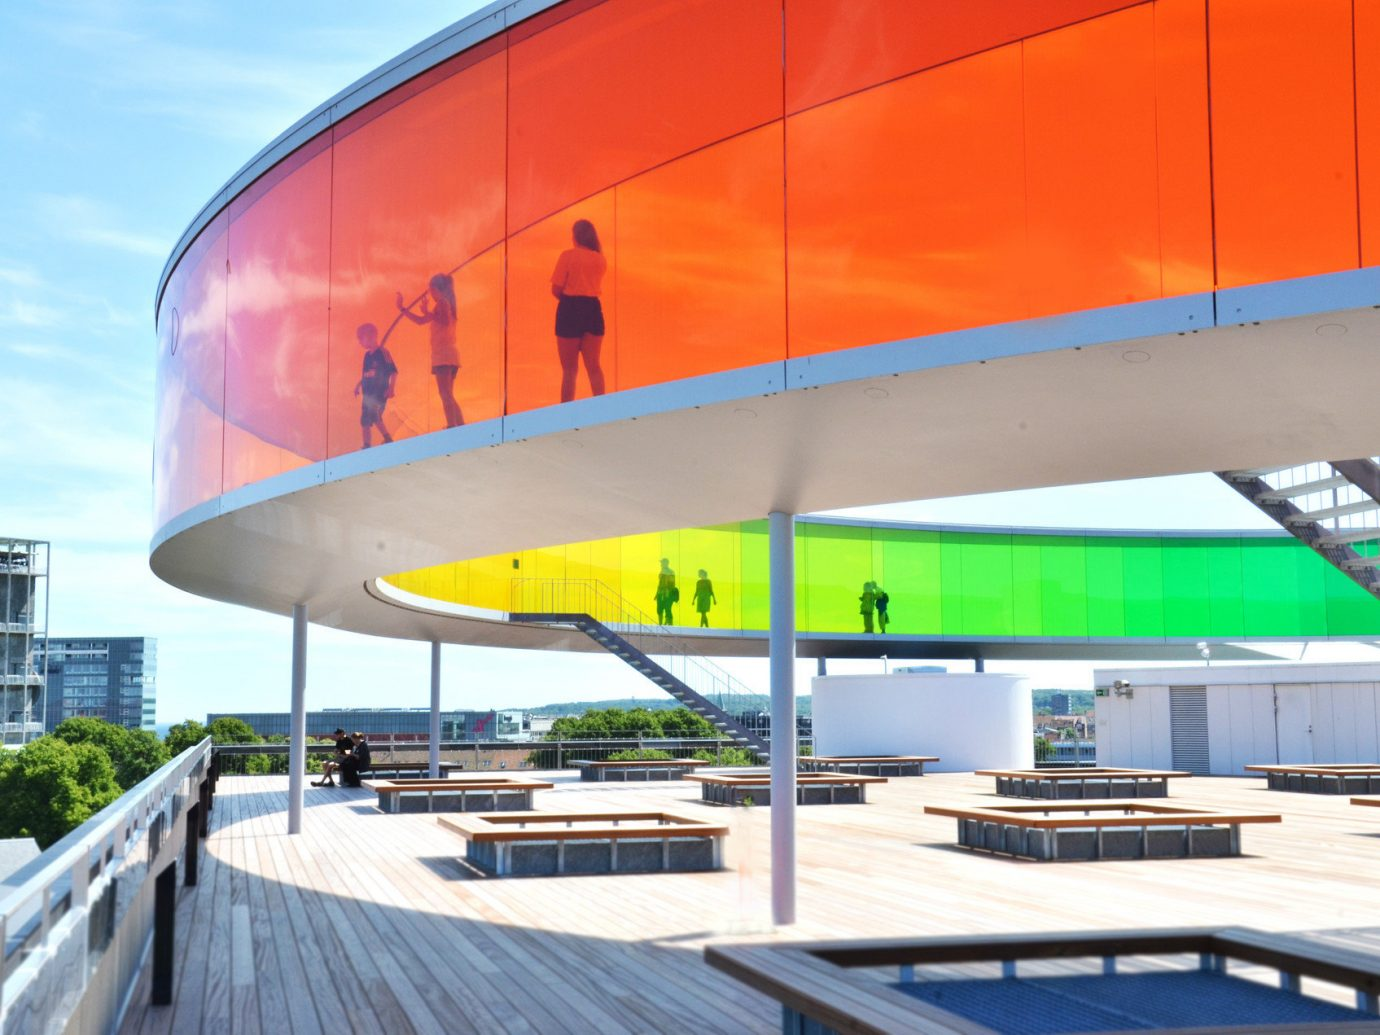 Architecture art Buildings City city views Museums Parks Scenic views Trip Ideas outdoor structure airline vehicle sport venue atmosphere of earth aviation arena aircraft stadium headquarters convention center